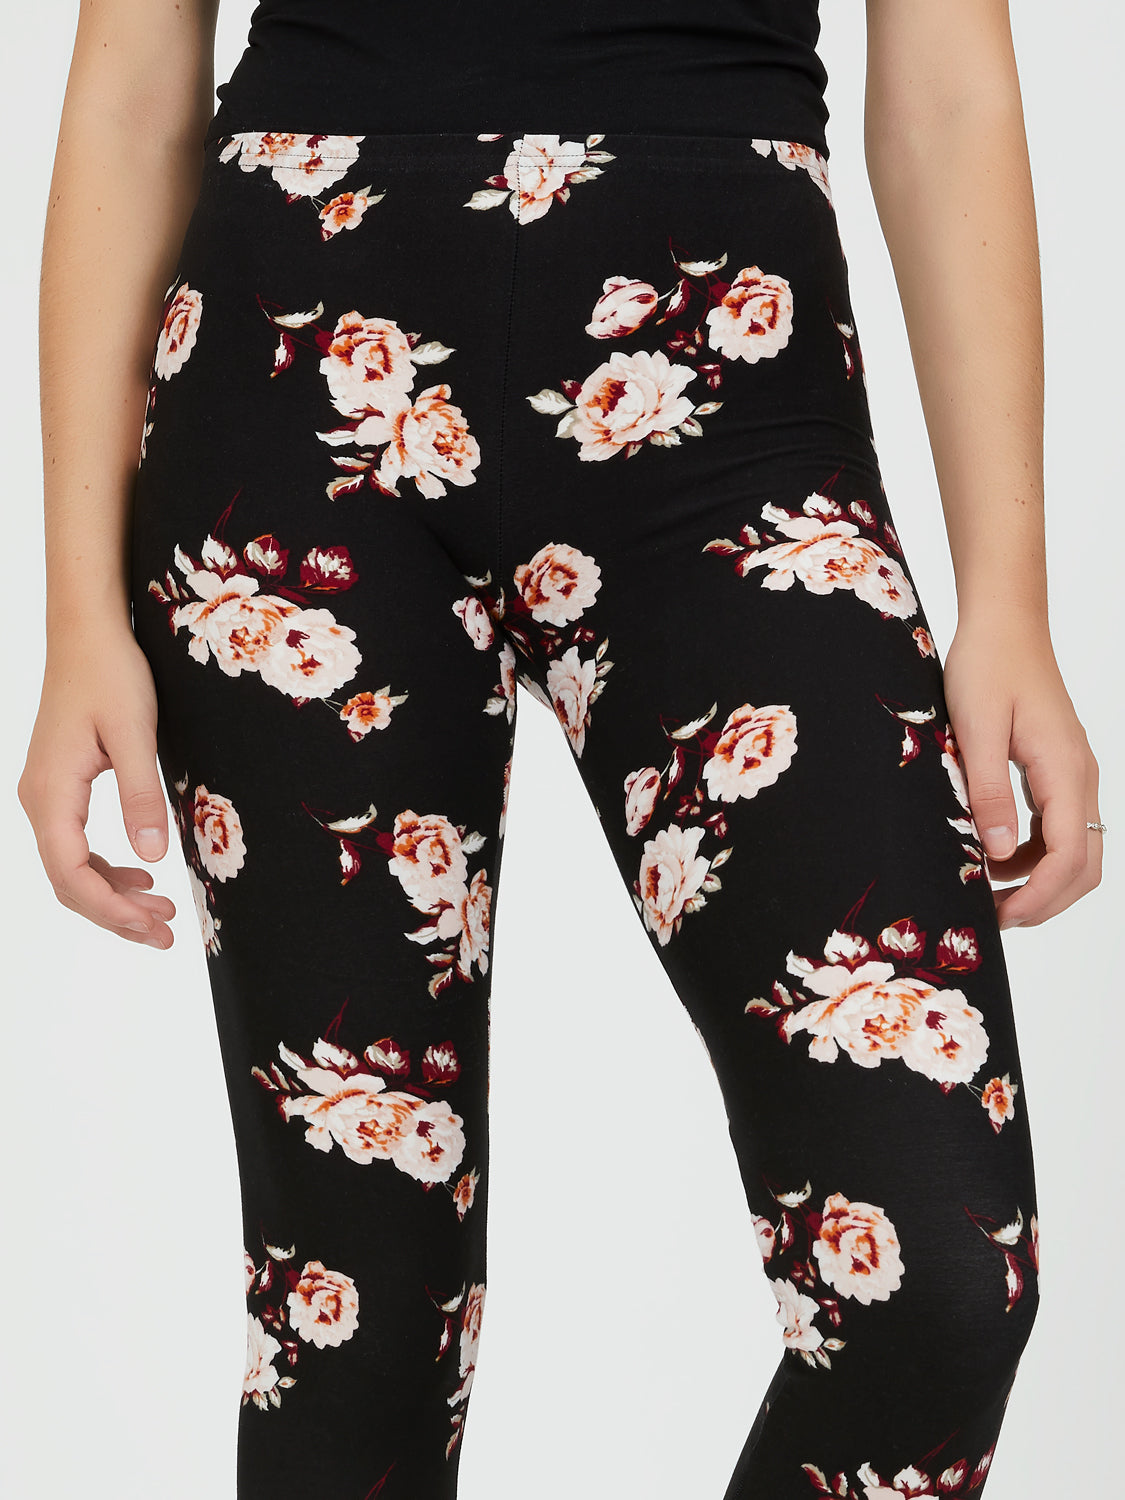 Brushed Yummy Floral Leggings